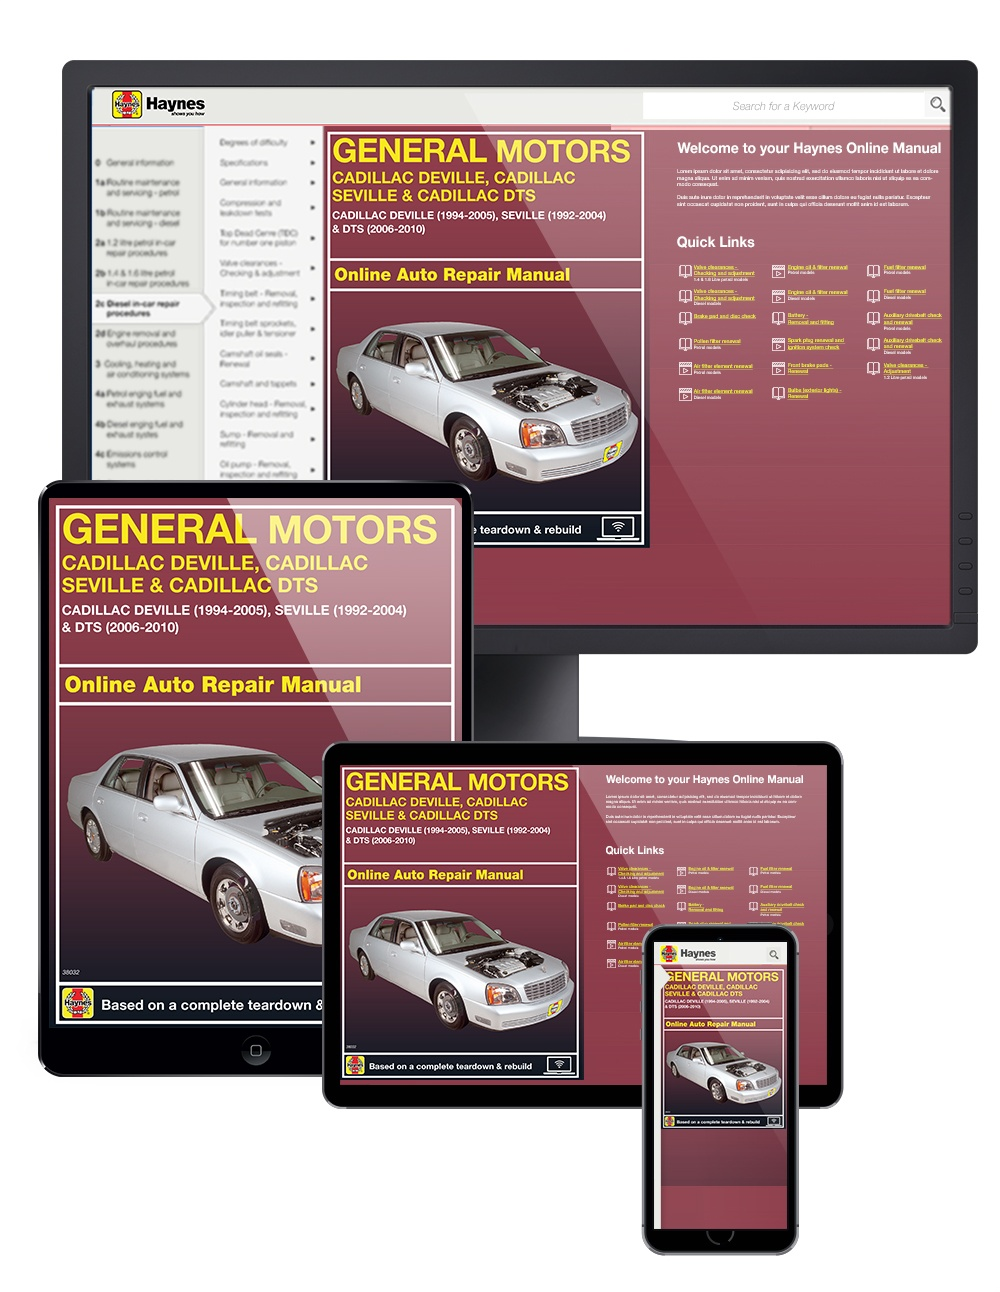 Cadillac DeVille (94-05), Seville (92-04) & DTS (06-10) Haynes Online Manual from Haynes Manuals US